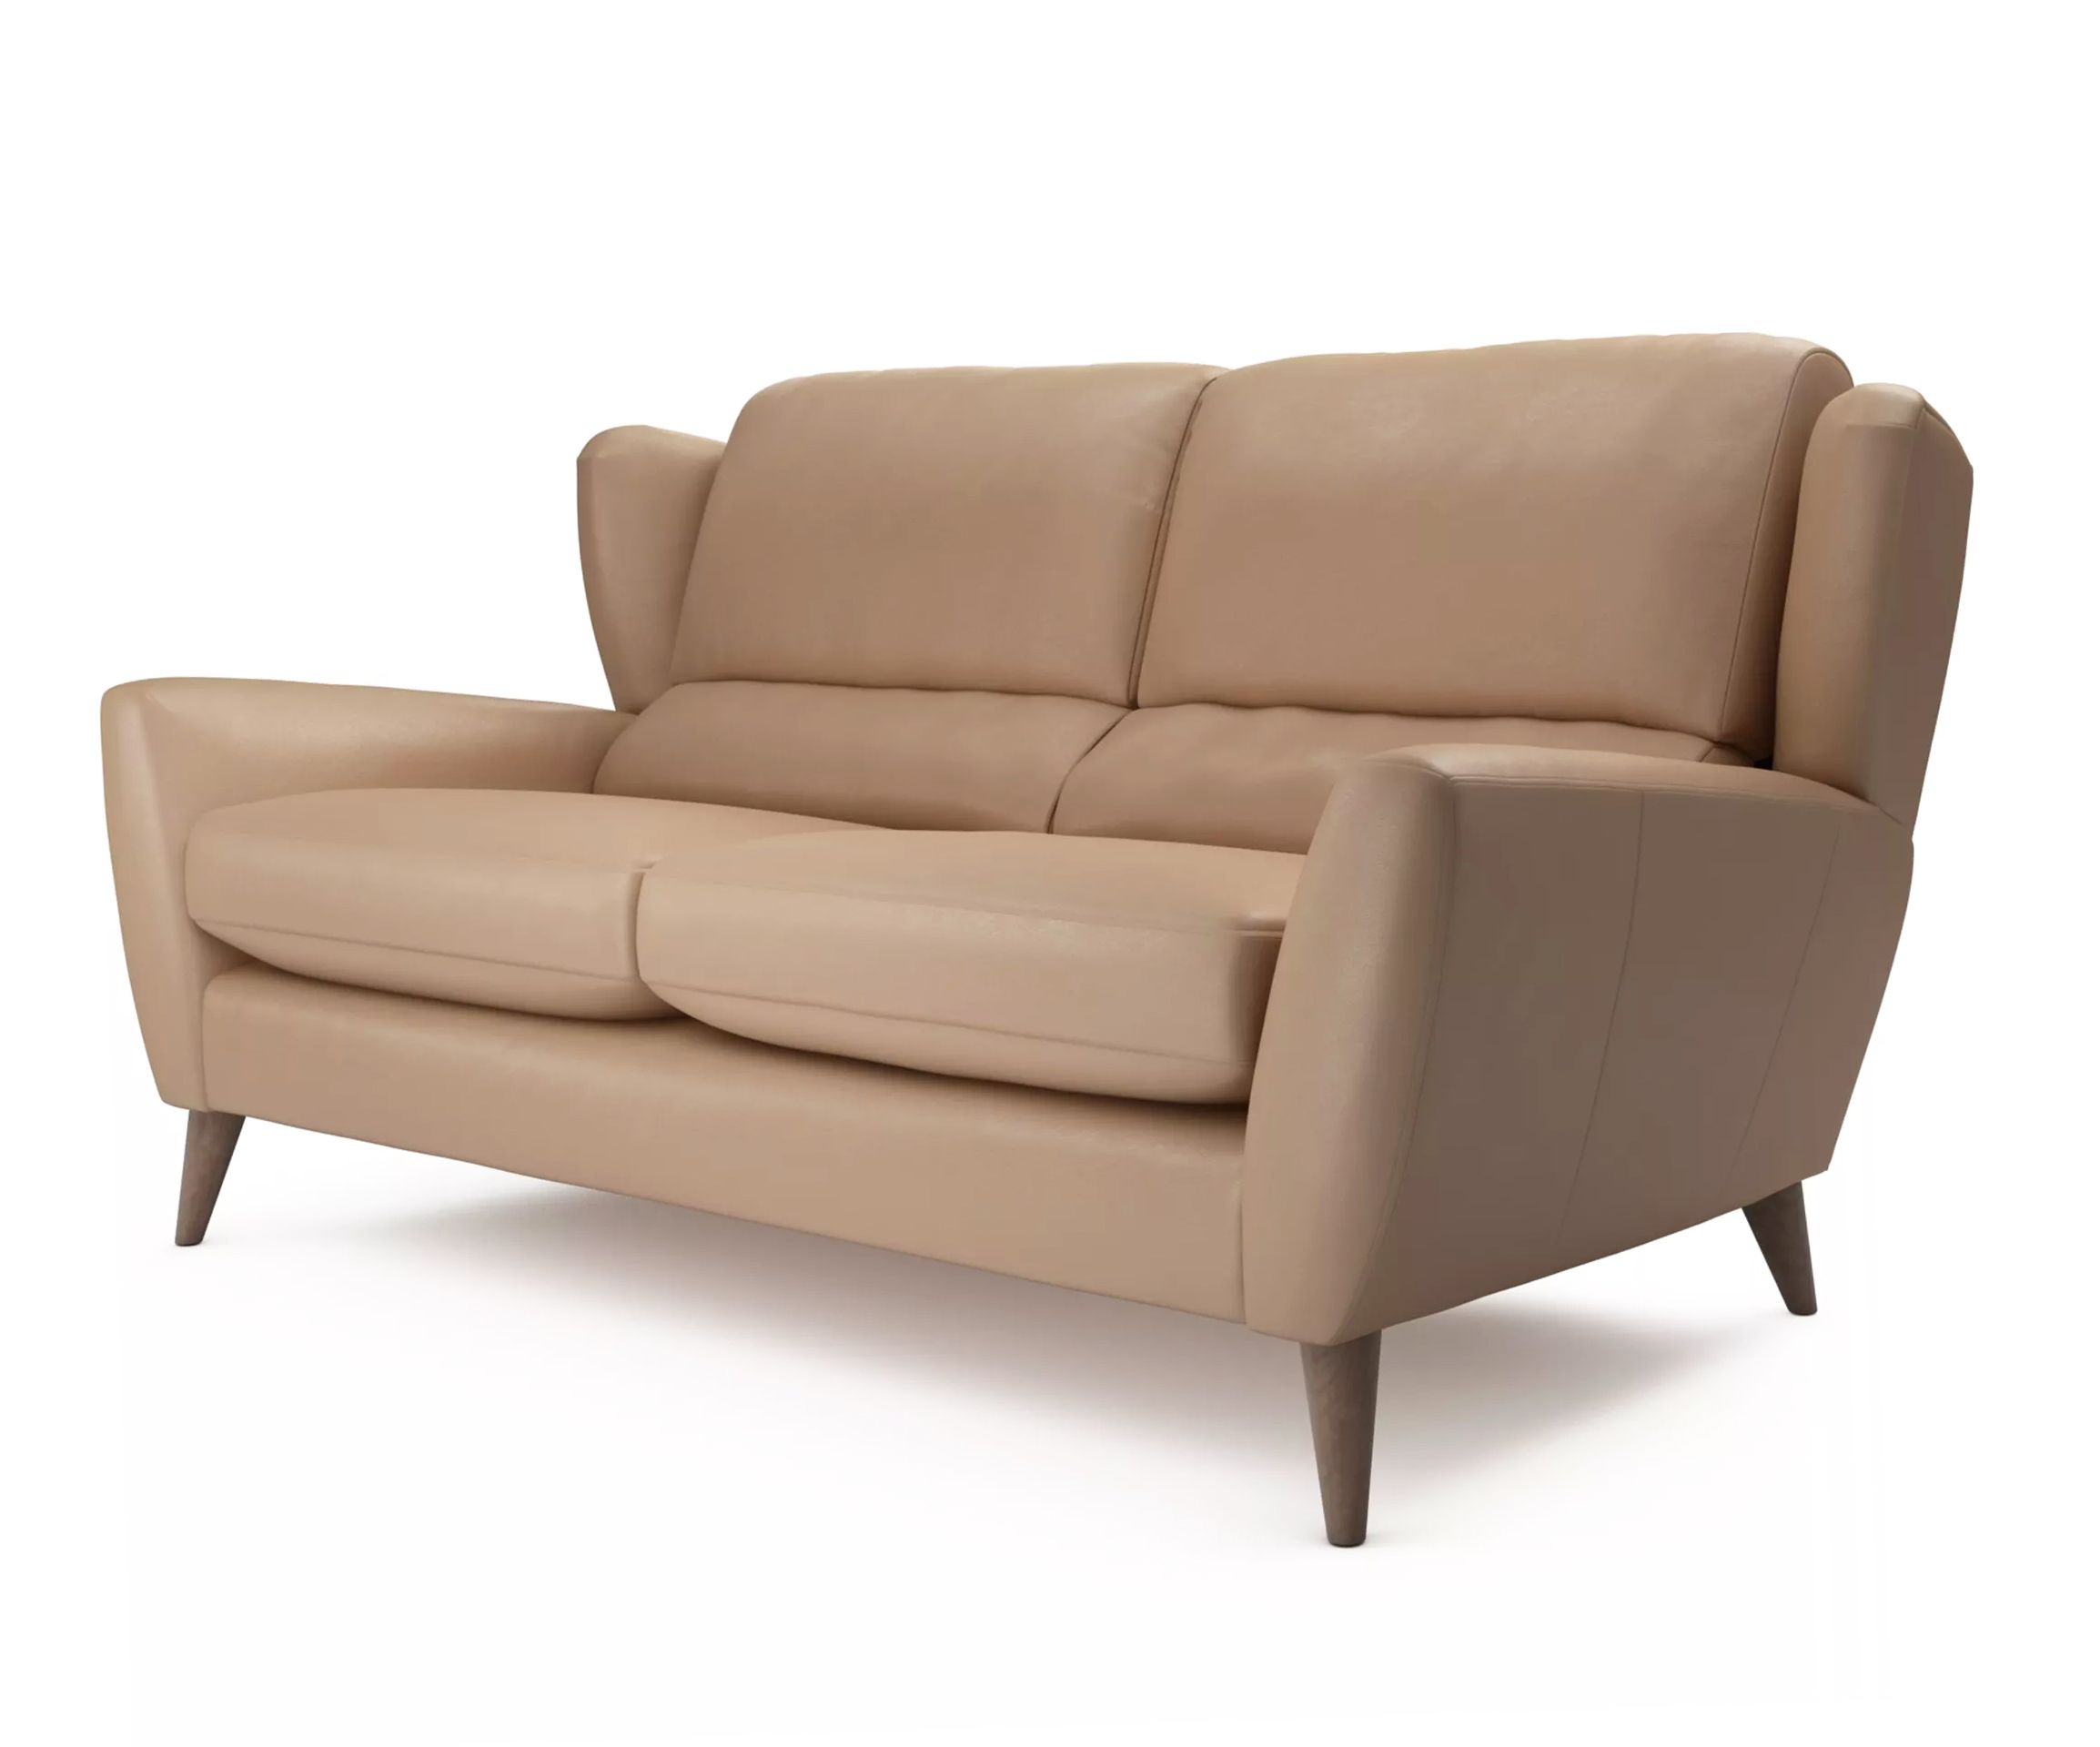 couch in bali hand angeles los sofa lounge couches streamline modern innovative shop balisofa pers furniture design crafted office